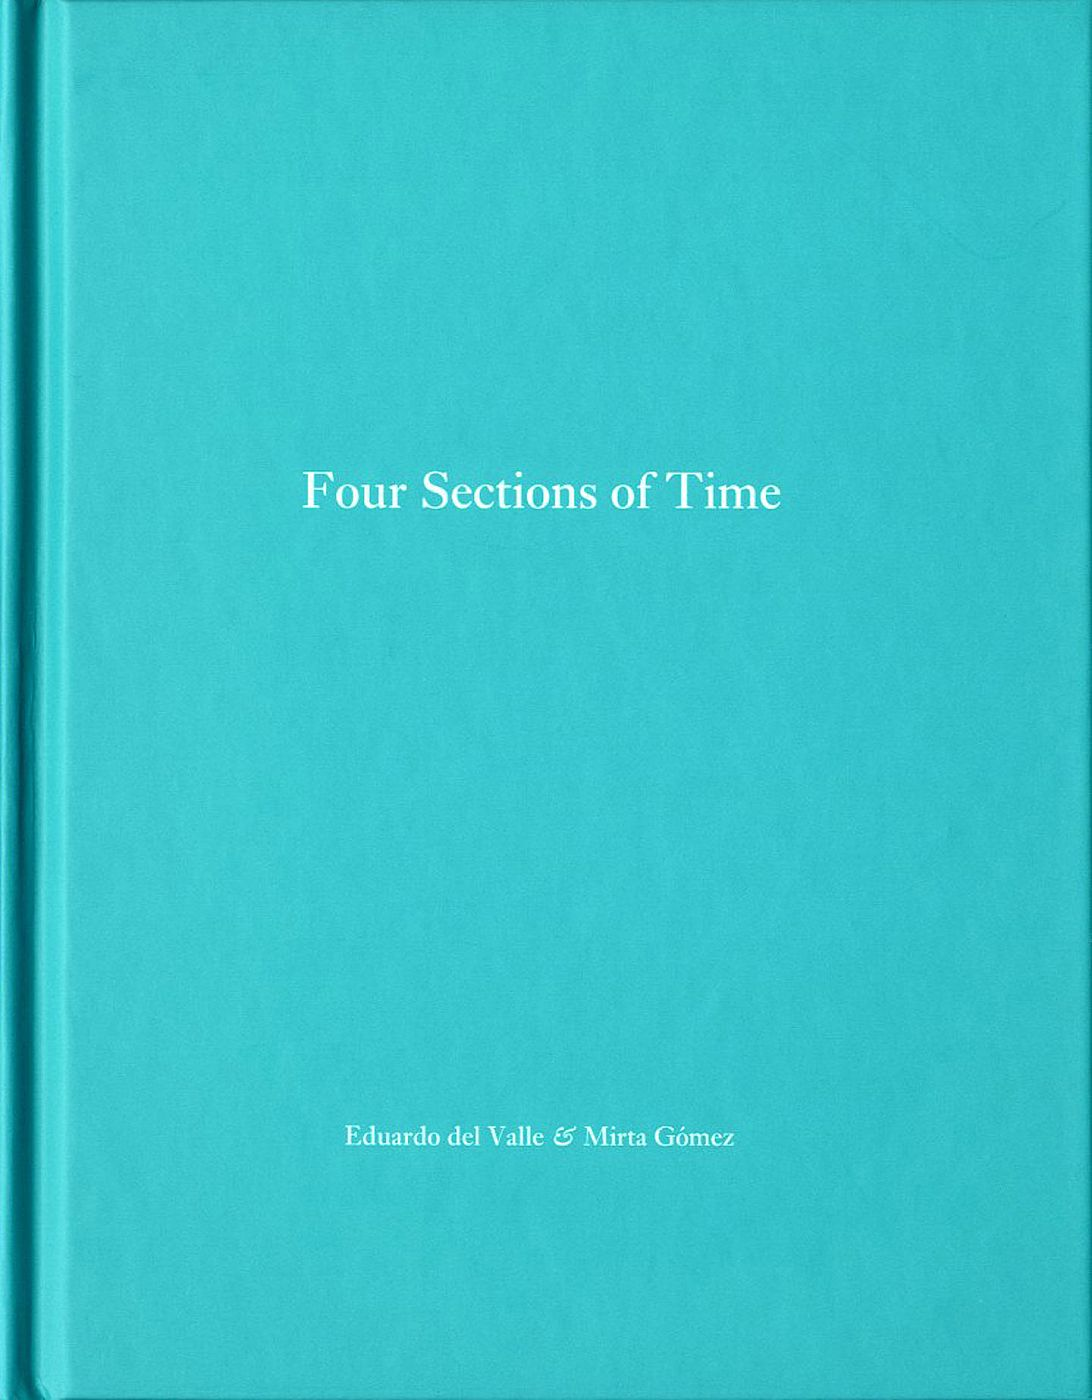 Eduardo del Valle and Mirta Gómez: Four Sections of Time (Complete Set of Four Books) (One Picture Book #22), Limited Edition (with Print)